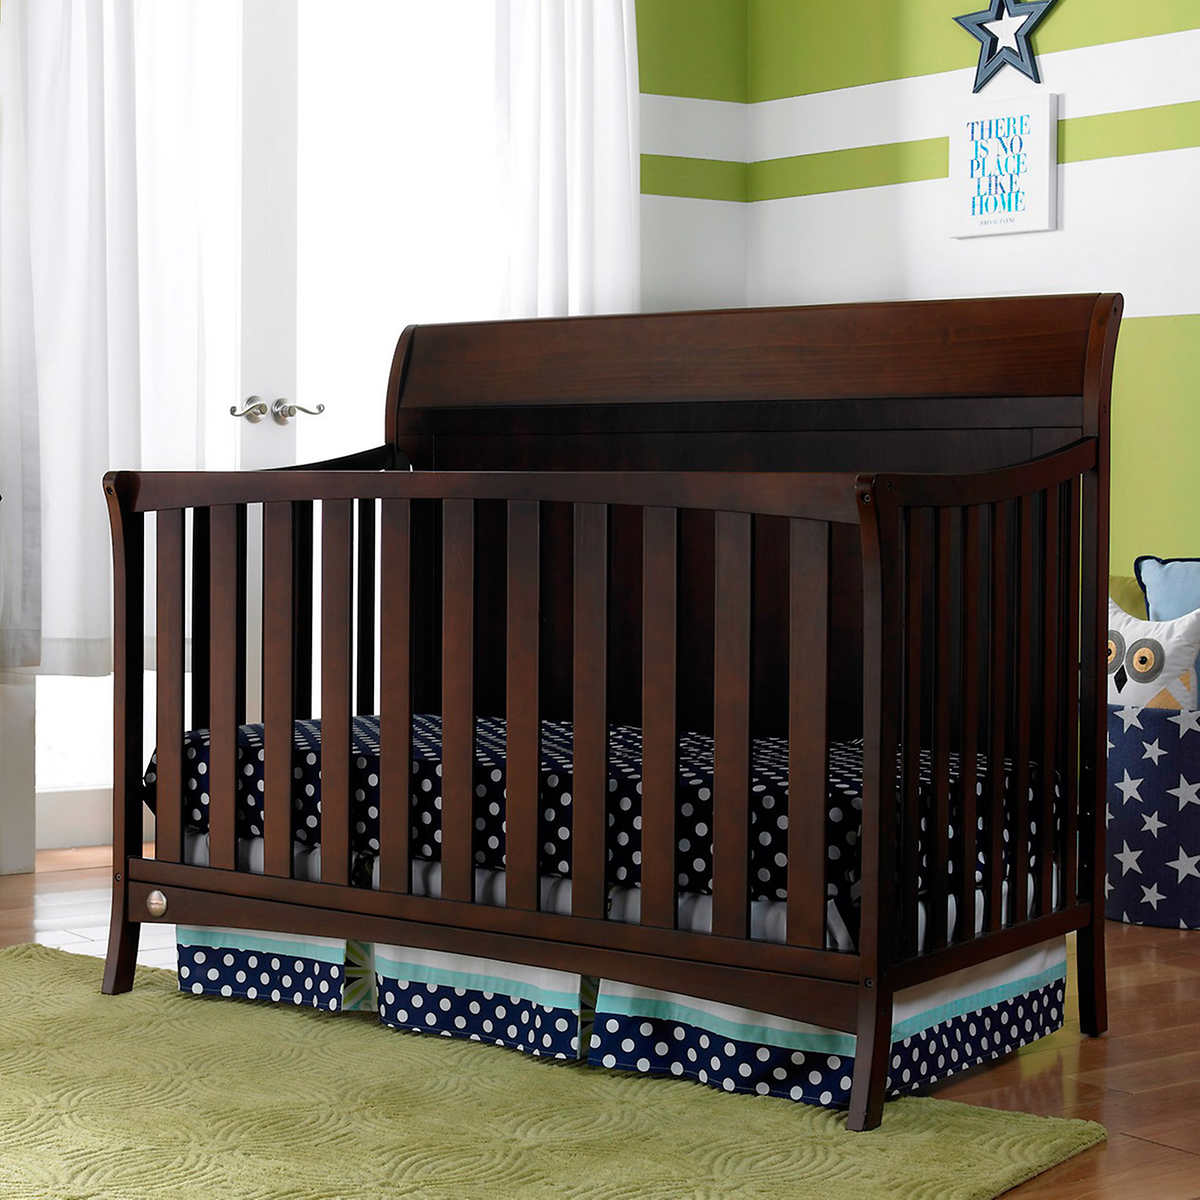 Used crib for sale edmonton - Fisher Price Georgetown Convertible Crib In Espresso